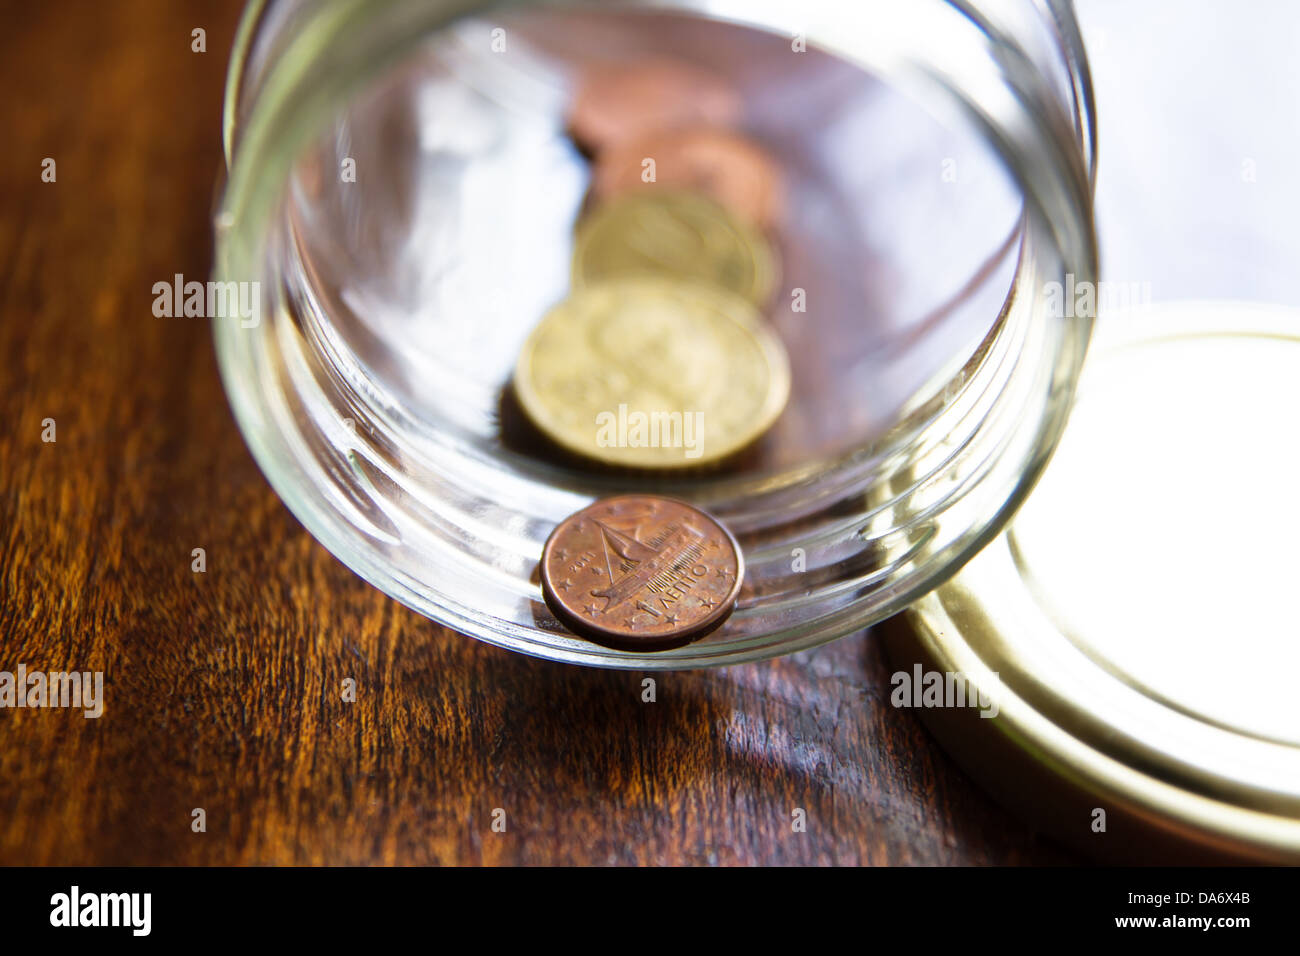 Economy of Greece is having hard times. This photo shows how Greek people collect their euro coins in jars - Stock Image